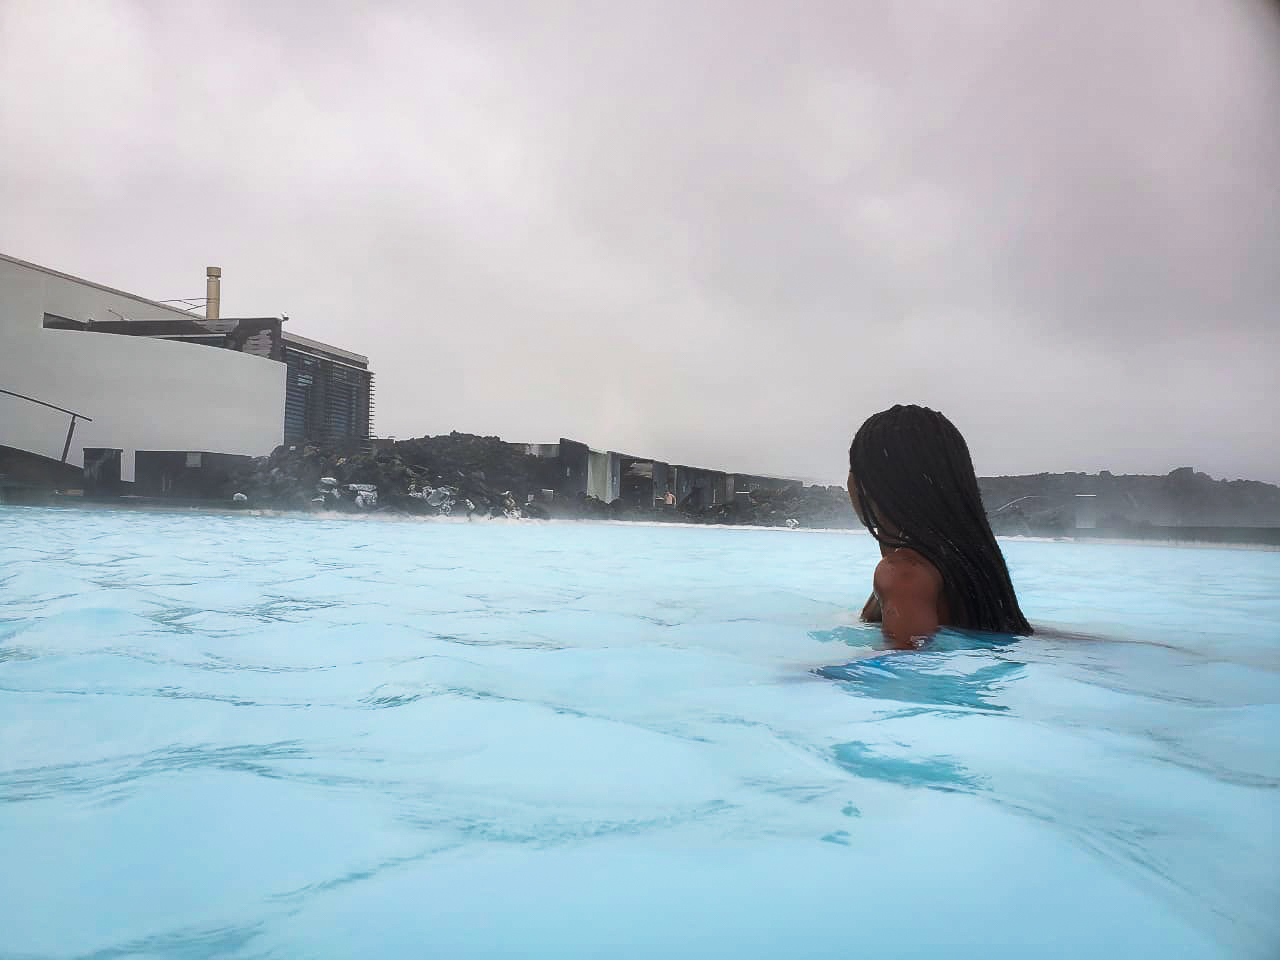 mist over blue grey waters in Iceland's Blue Lagoon with lava fields in the background